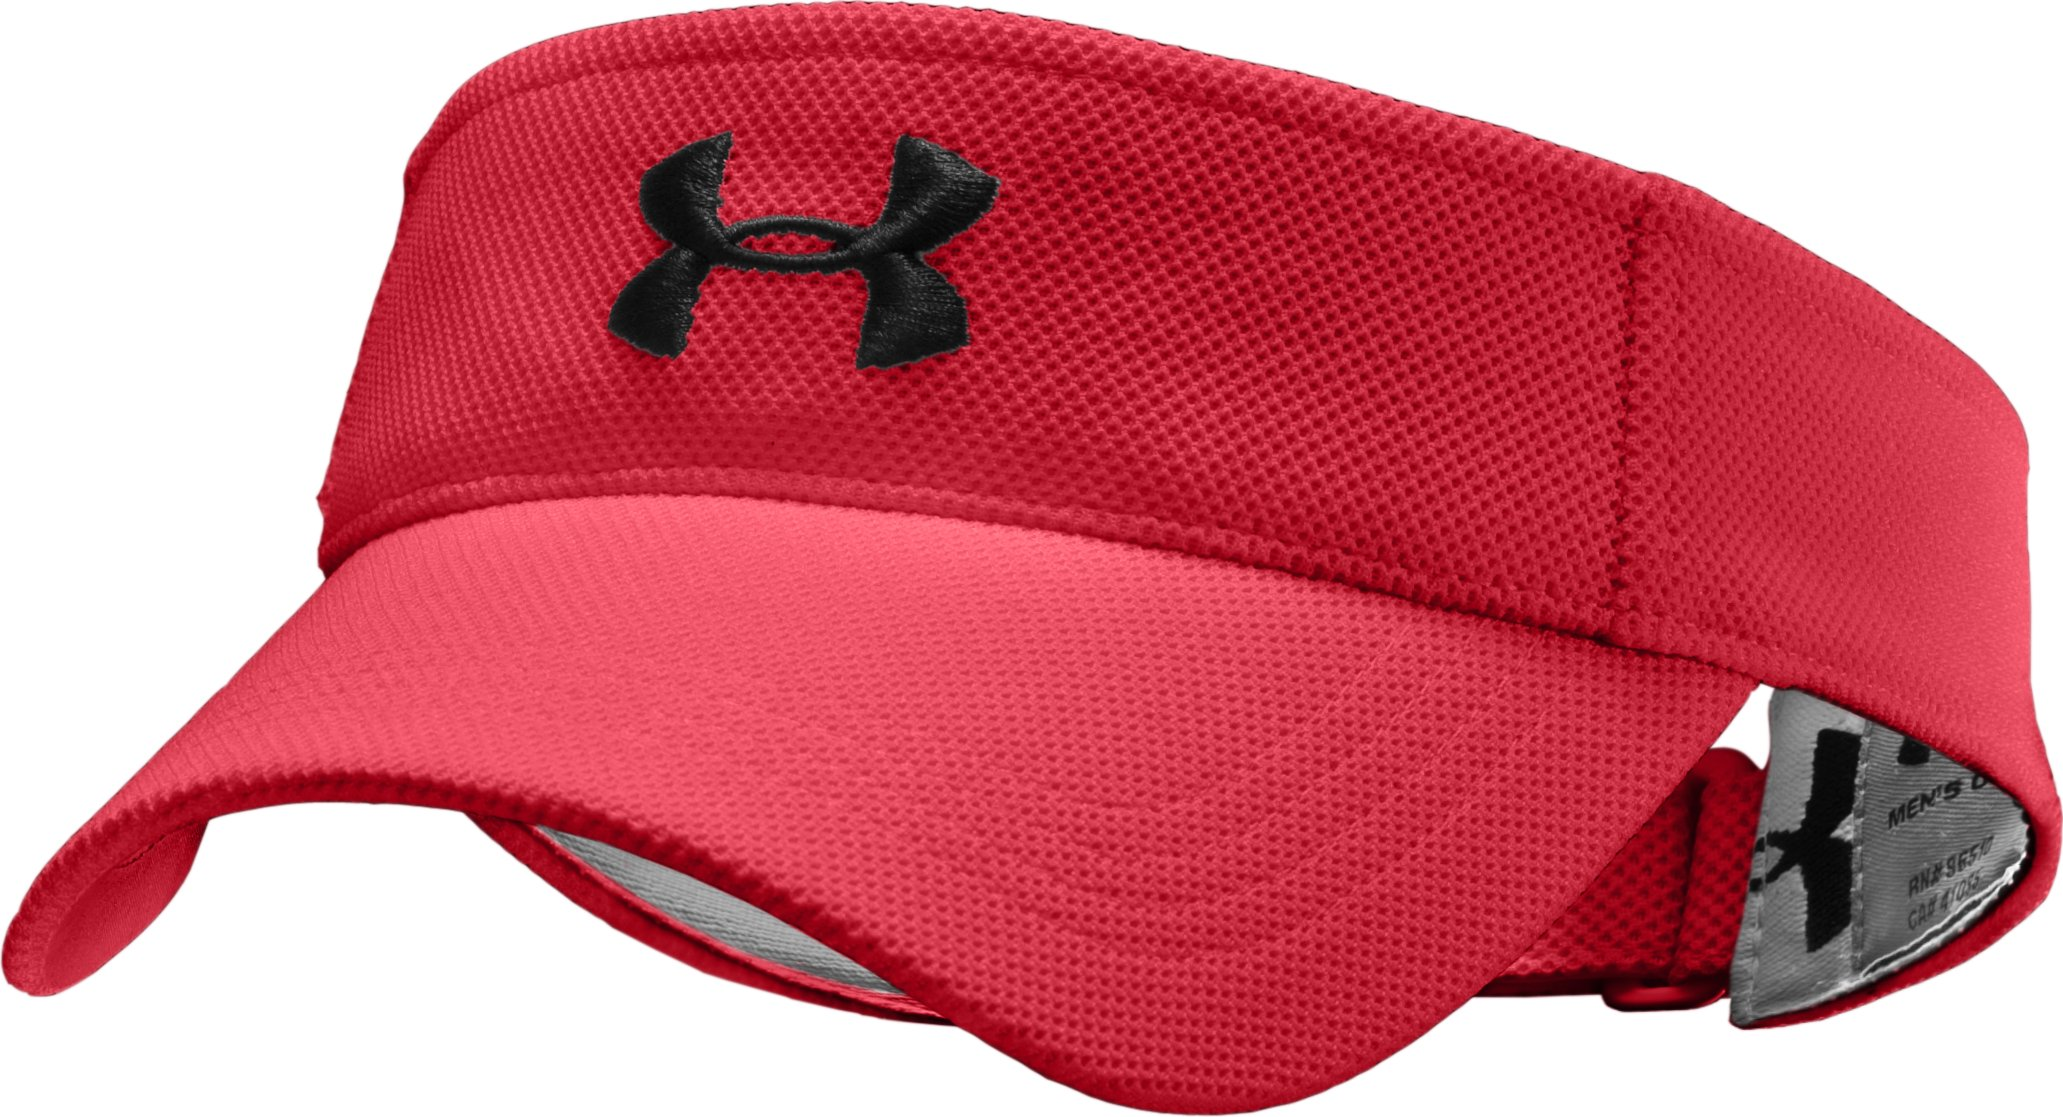 Boys' Audible Adjustable Visor, Red